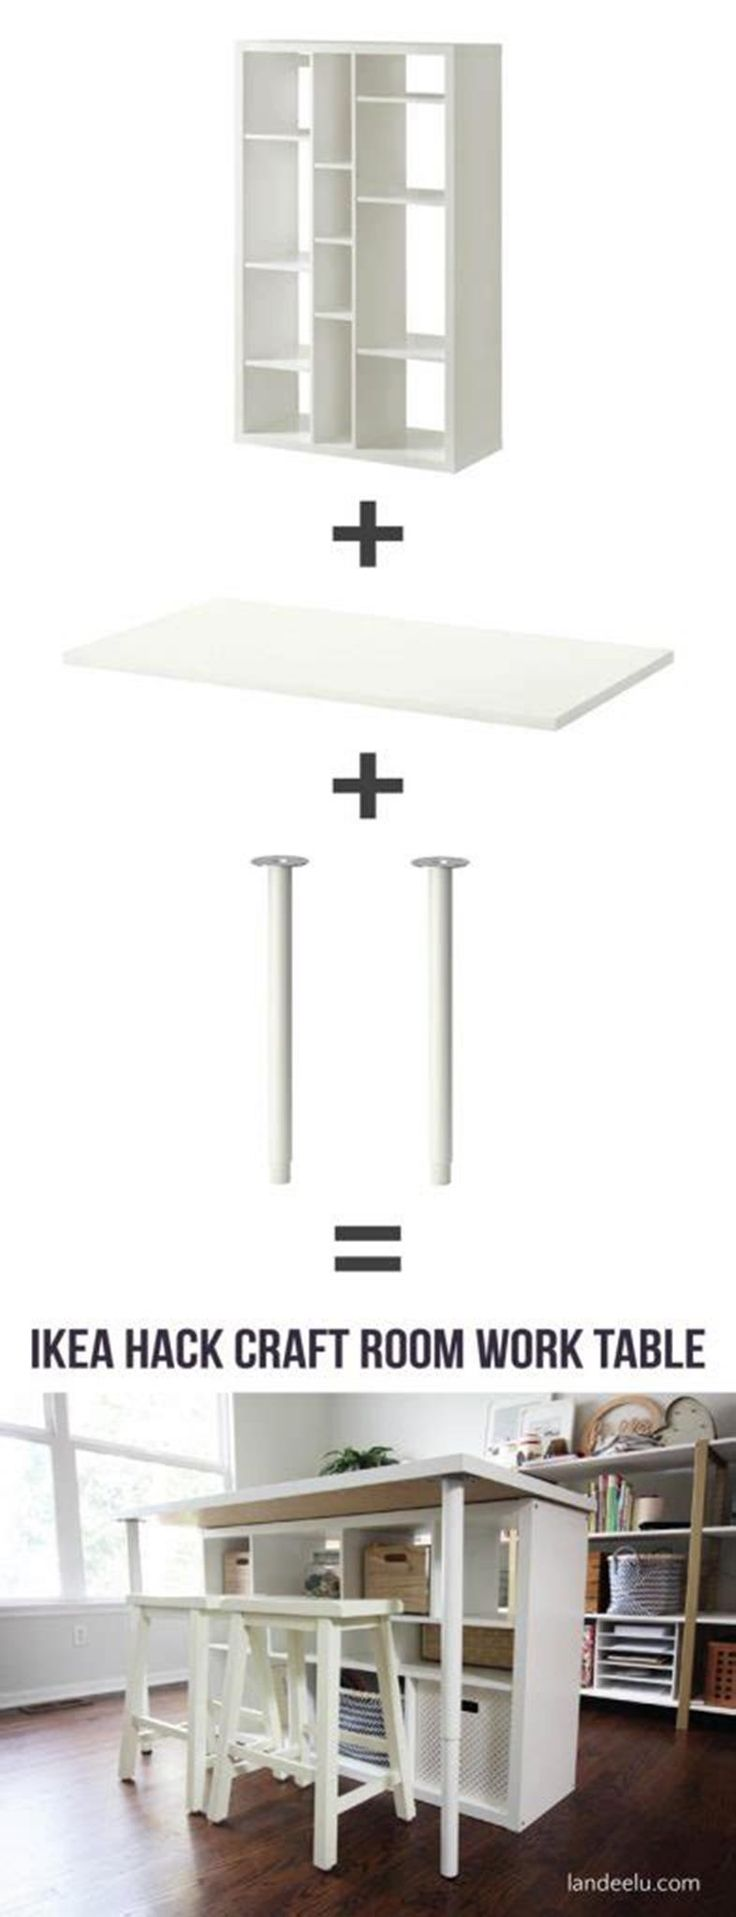 25 Best IKEA Craft Room Table with Storage Ideas for 2019